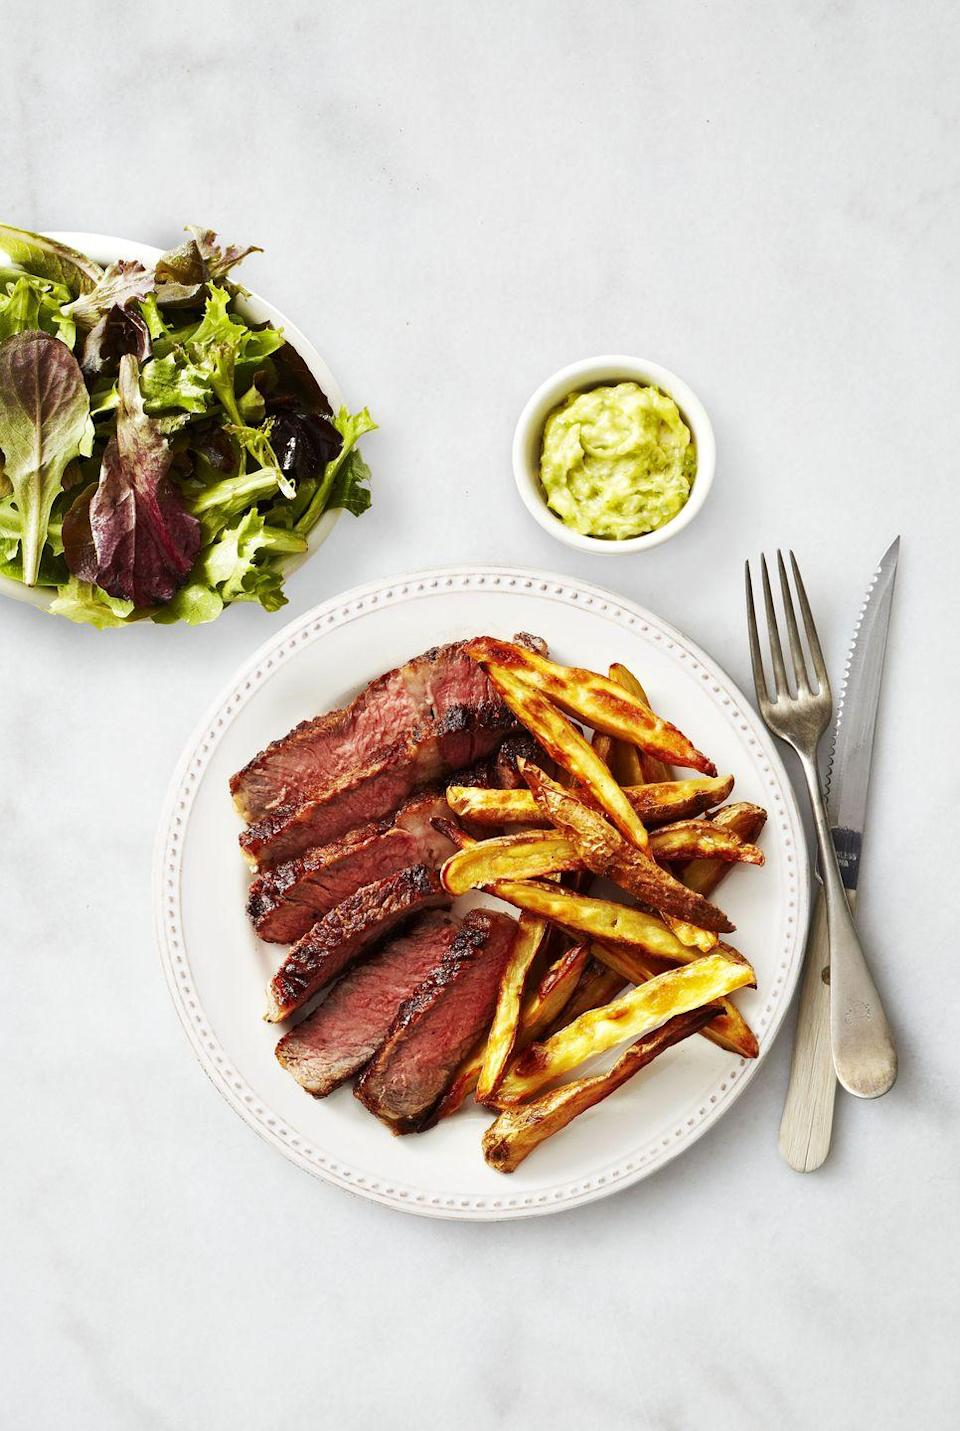 """<p>Steak and potatoes are a classic combo, but we love to dress up our favorites every once in a while. Pesto and butter come together to make a steak dressing you can't resist.</p><p><em><a href=""""https://www.goodhousekeeping.com/food-recipes/a37300/steak-and-fingerling-frites-recipe/"""" rel=""""nofollow noopener"""" target=""""_blank"""" data-ylk=""""slk:Get the recipe fro Steak and Fingerling Frites »"""" class=""""link rapid-noclick-resp"""">Get the recipe fro Steak and Fingerling Frites »</a></em></p><p><strong>RELATED</strong>: <a href=""""https://www.goodhousekeeping.com/food-recipes/g2346/steak-recipes/"""" rel=""""nofollow noopener"""" target=""""_blank"""" data-ylk=""""slk:25+ Simple Steak Recipes for Any Occassion"""" class=""""link rapid-noclick-resp"""">25+ Simple Steak Recipes for Any Occassion</a></p>"""